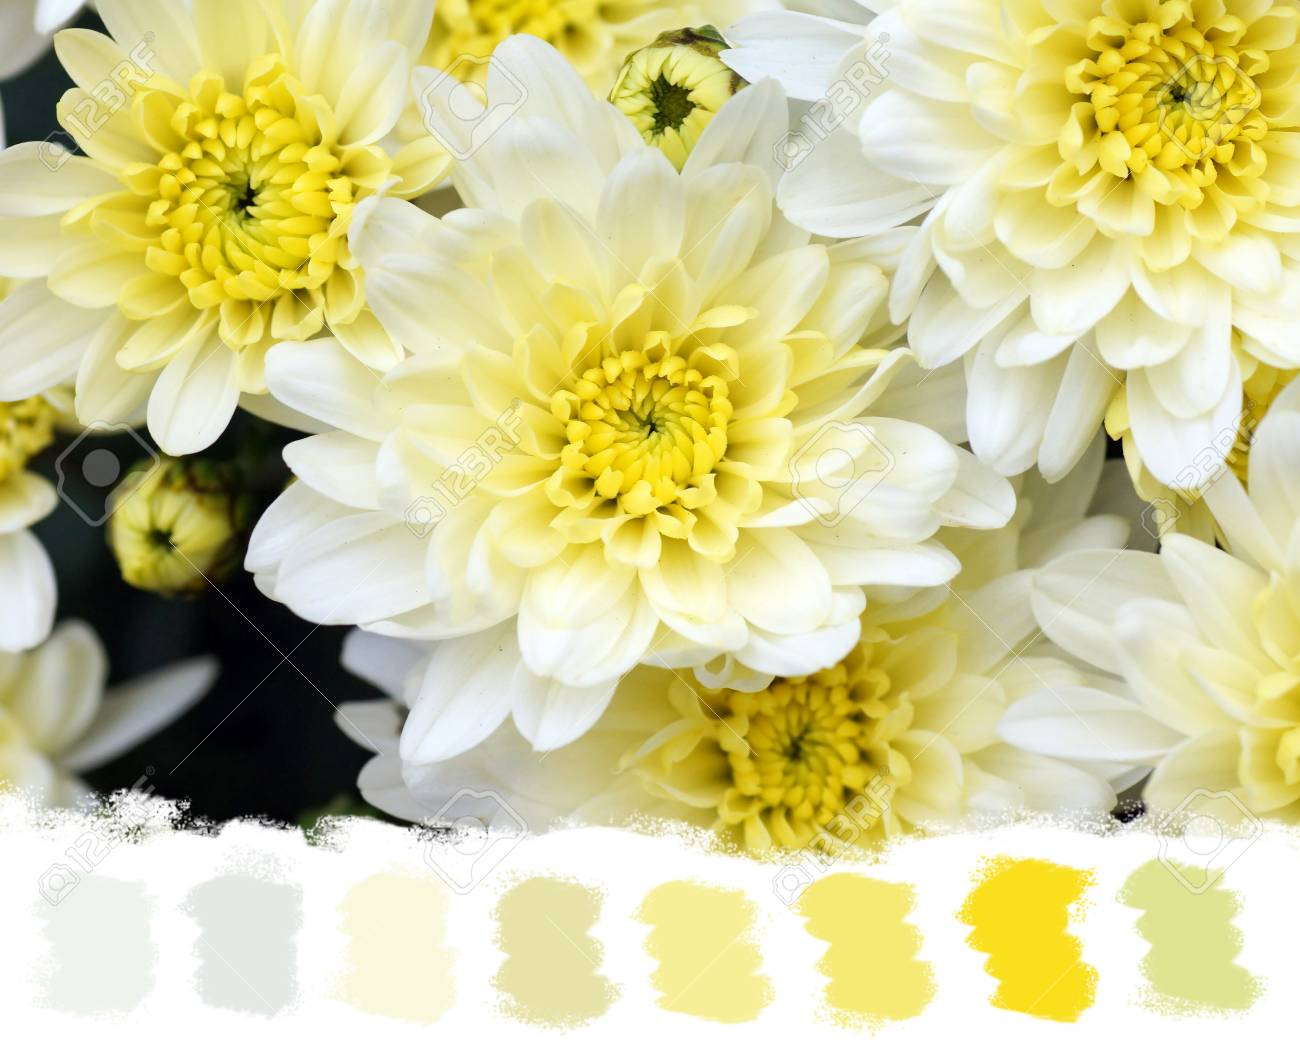 White and yellow mums flowers beautiful and soft color palette stock photo white and yellow mums flowers beautiful and soft color palette mightylinksfo